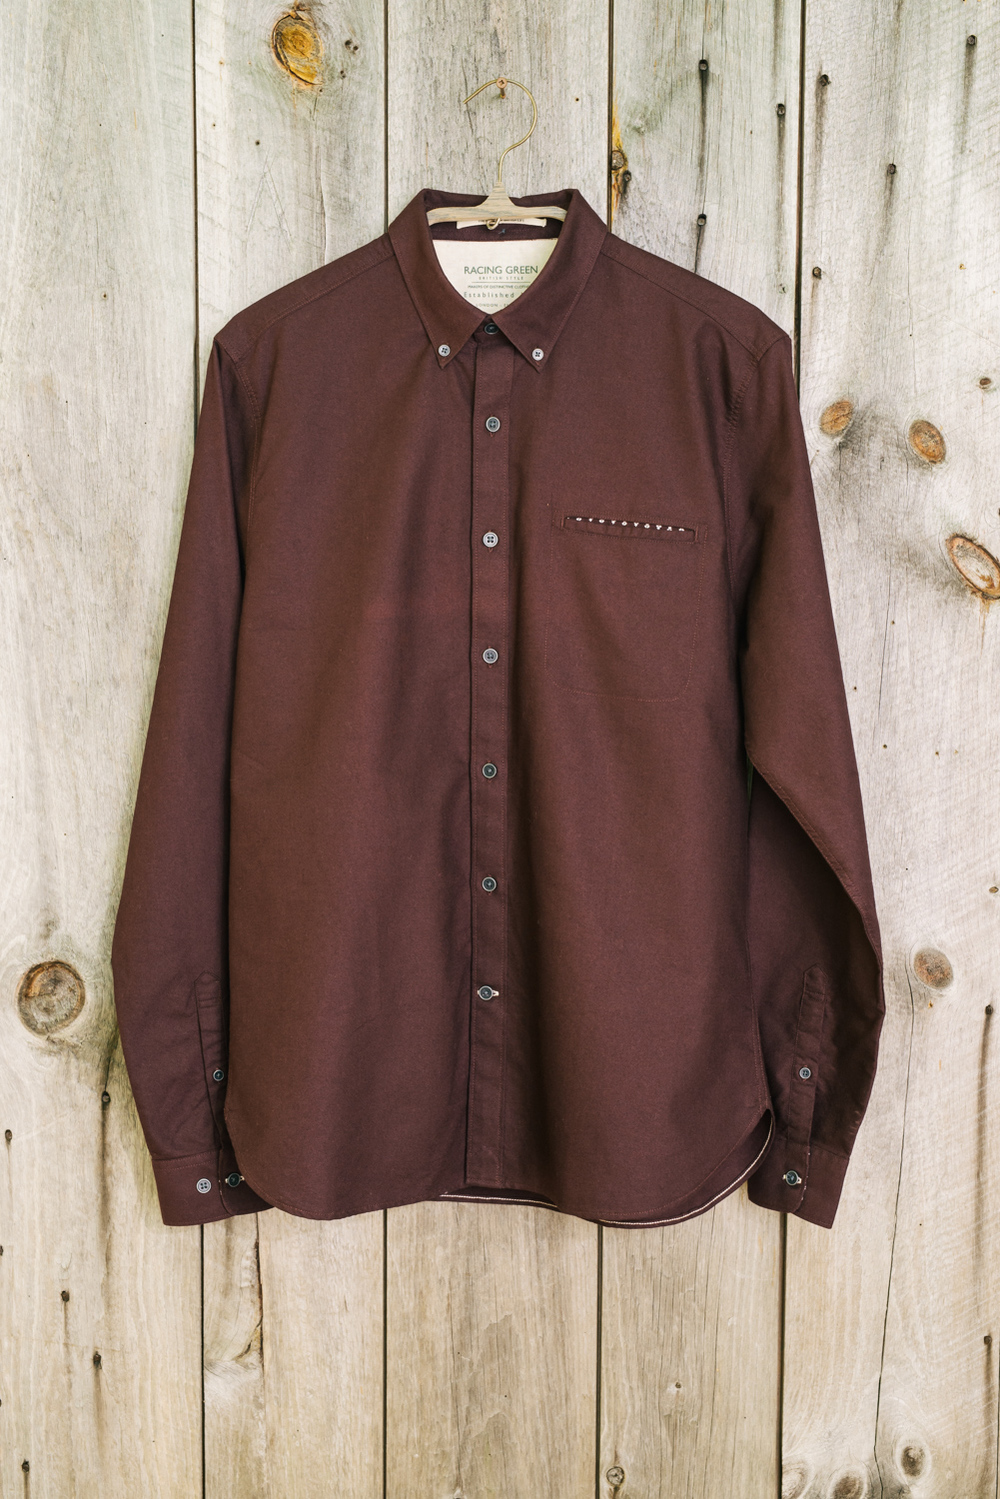 Marshalls_Shot_27_MensOF_Shirt_6423.jpg